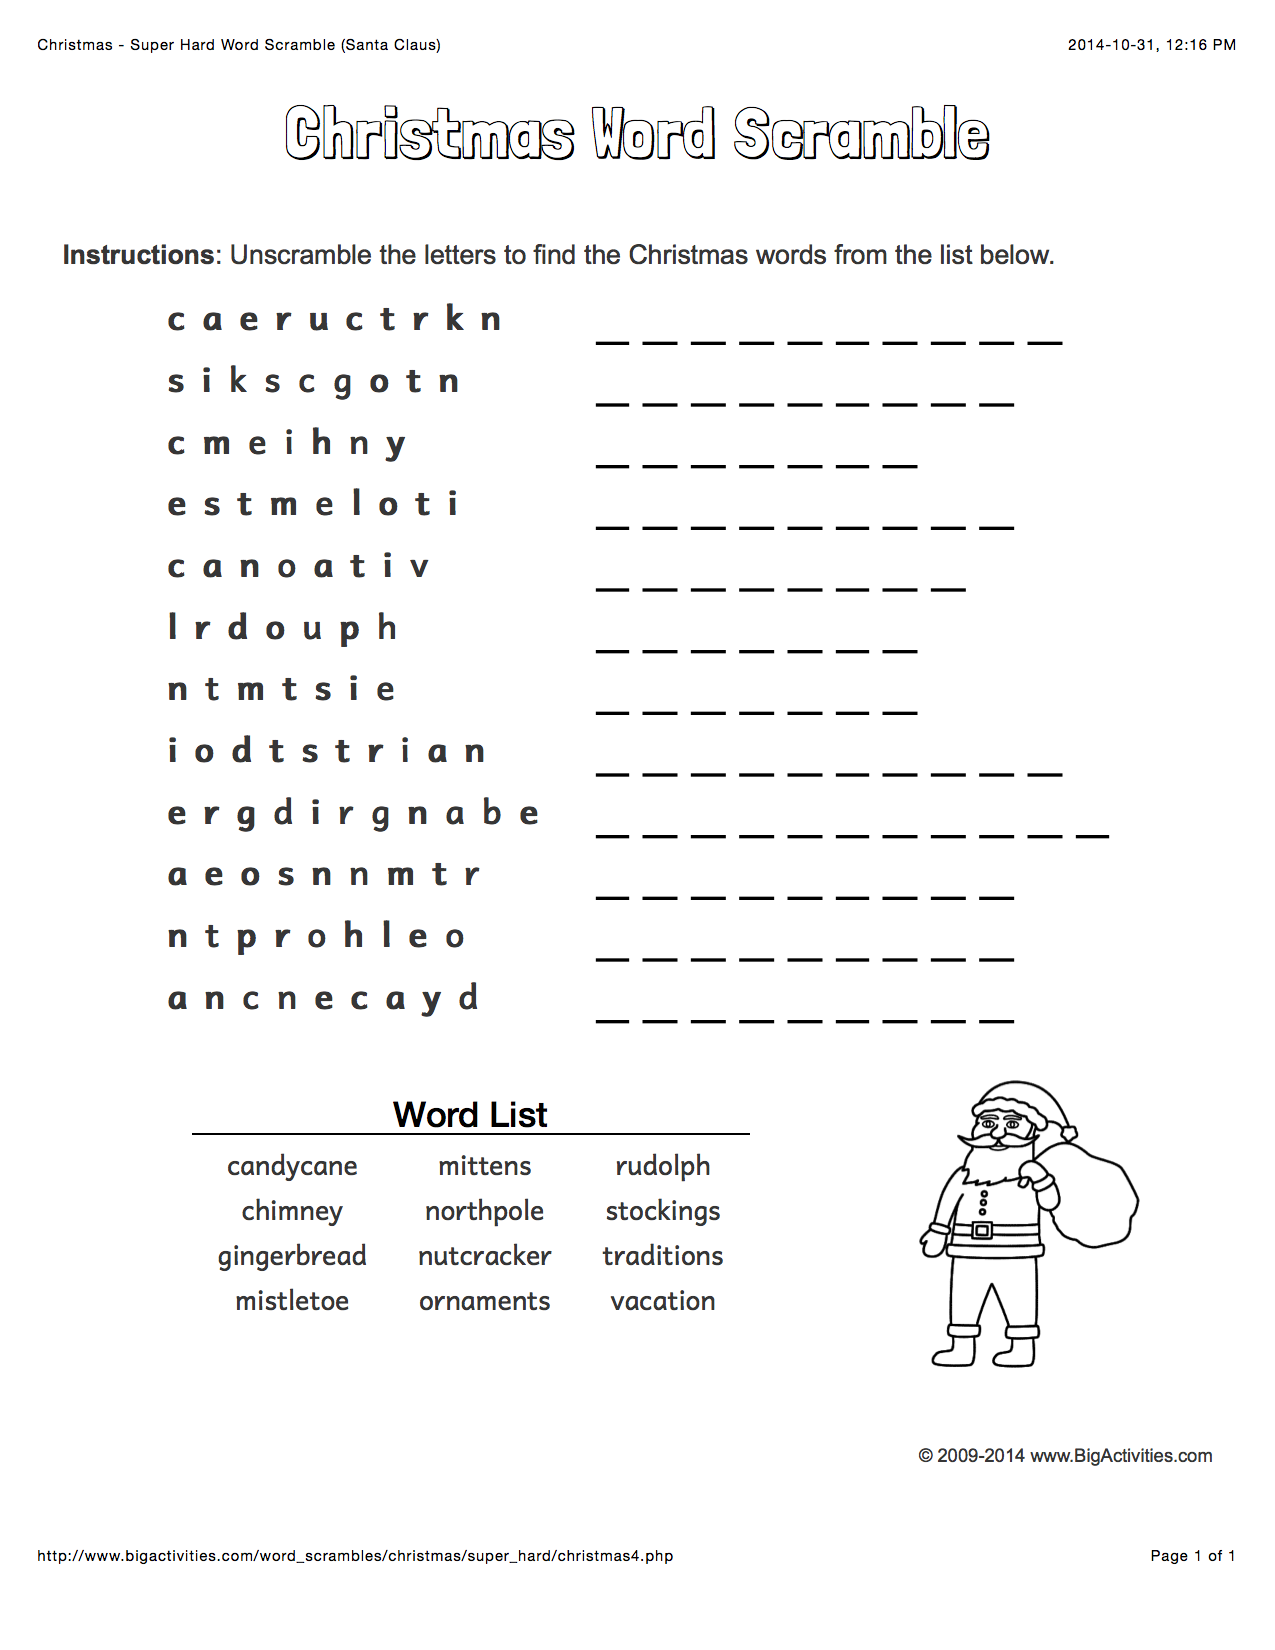 Christmas Word Scramble With Santa Claus. 4 Levels Of